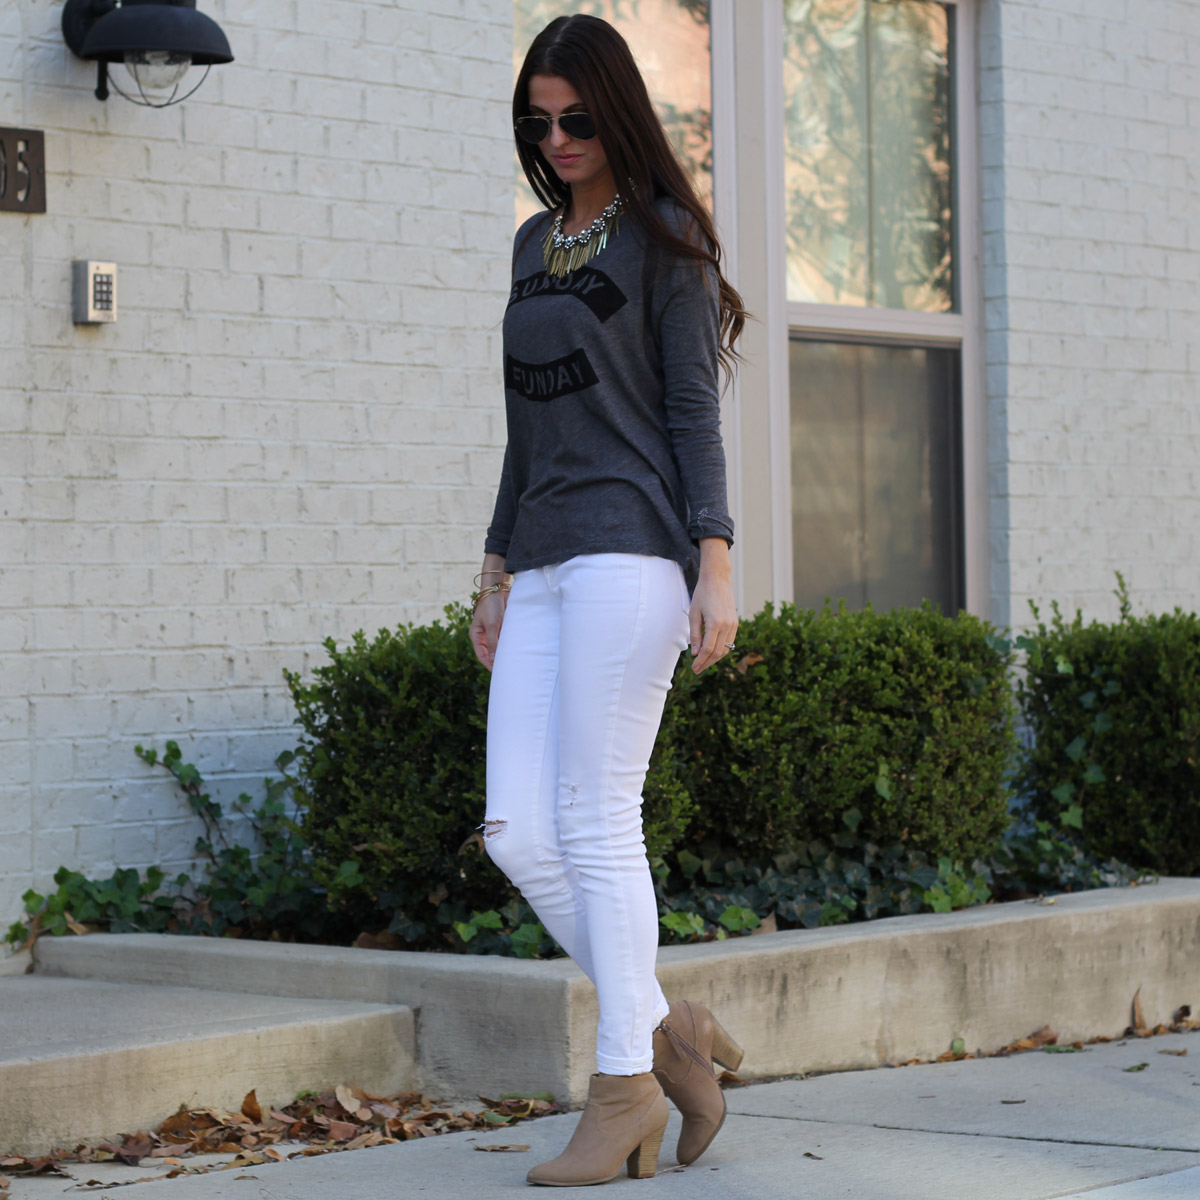 Sunday Funday Graphic Top and Statement Necklace and White Skinny Jeans